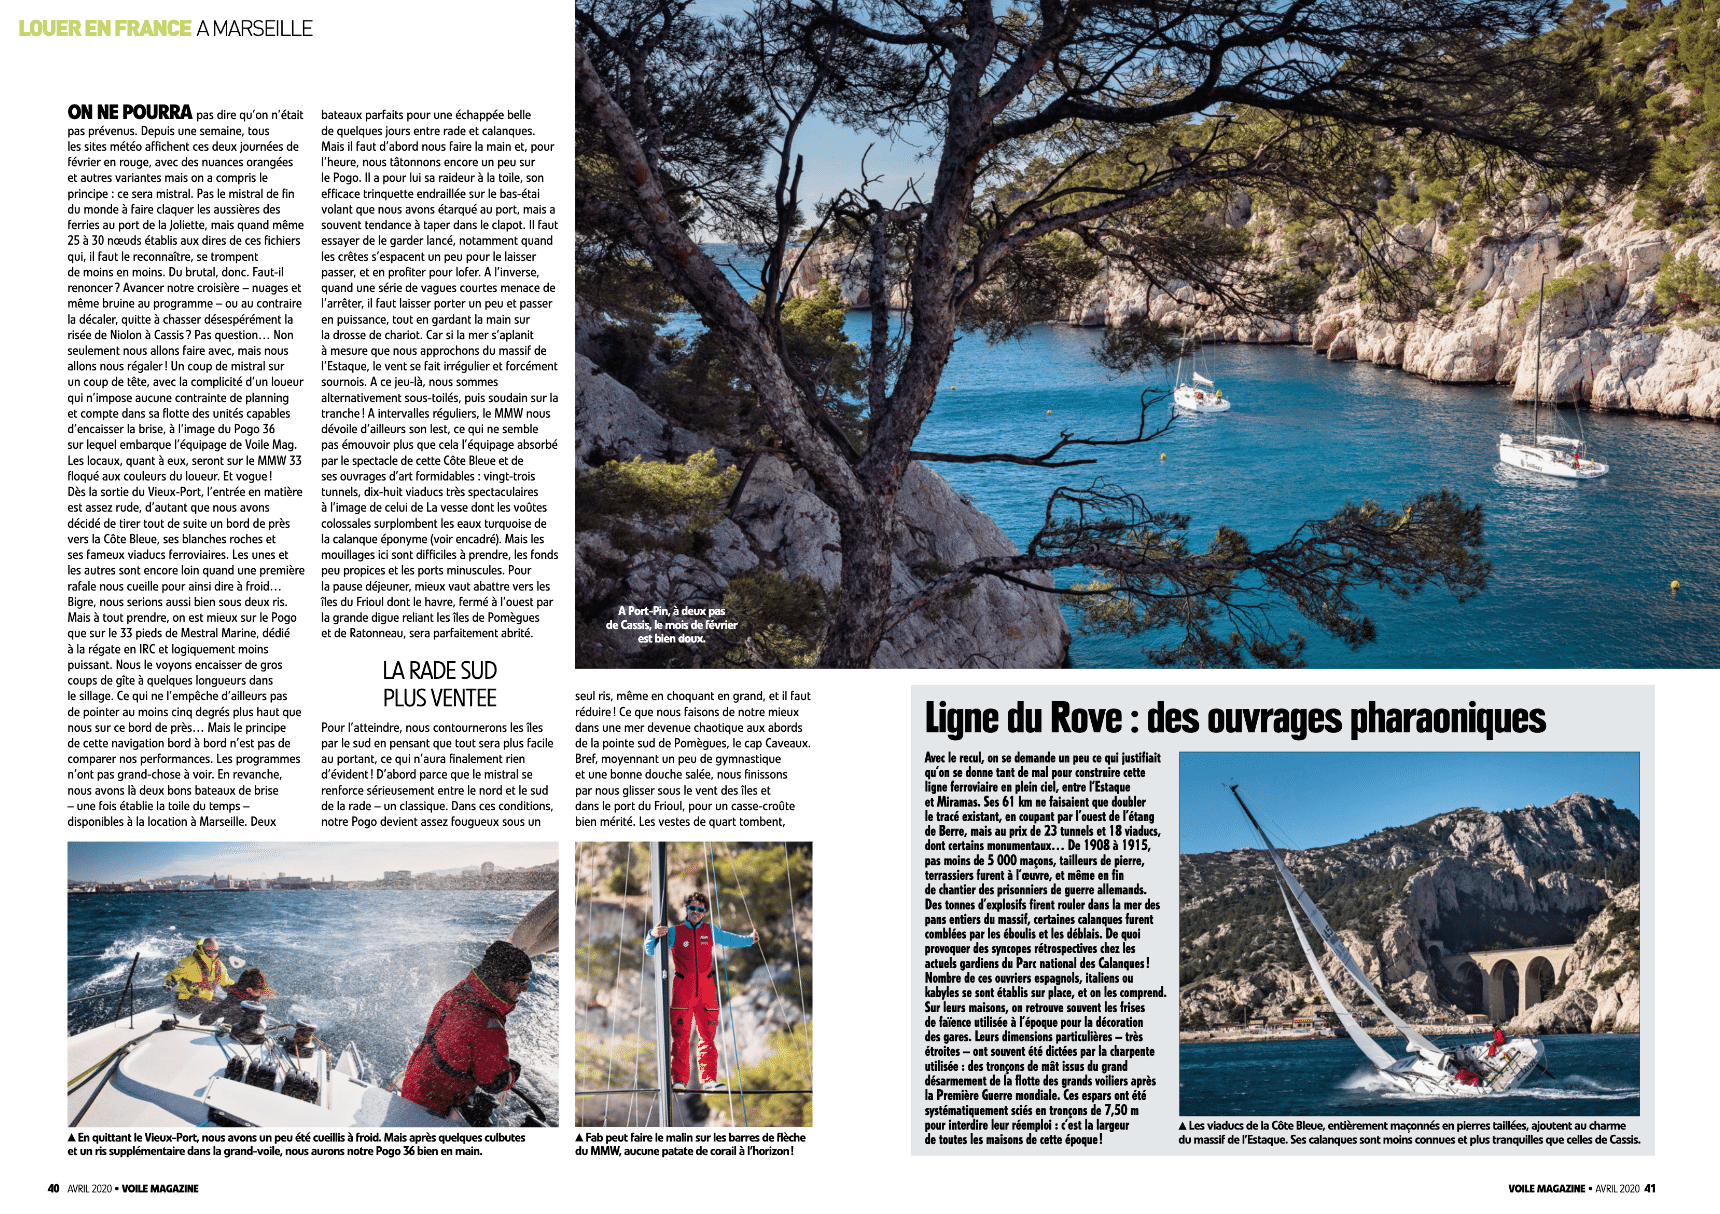 02 - Louer en France le temps d'un week-end (Voile Magazine Avril 2020)